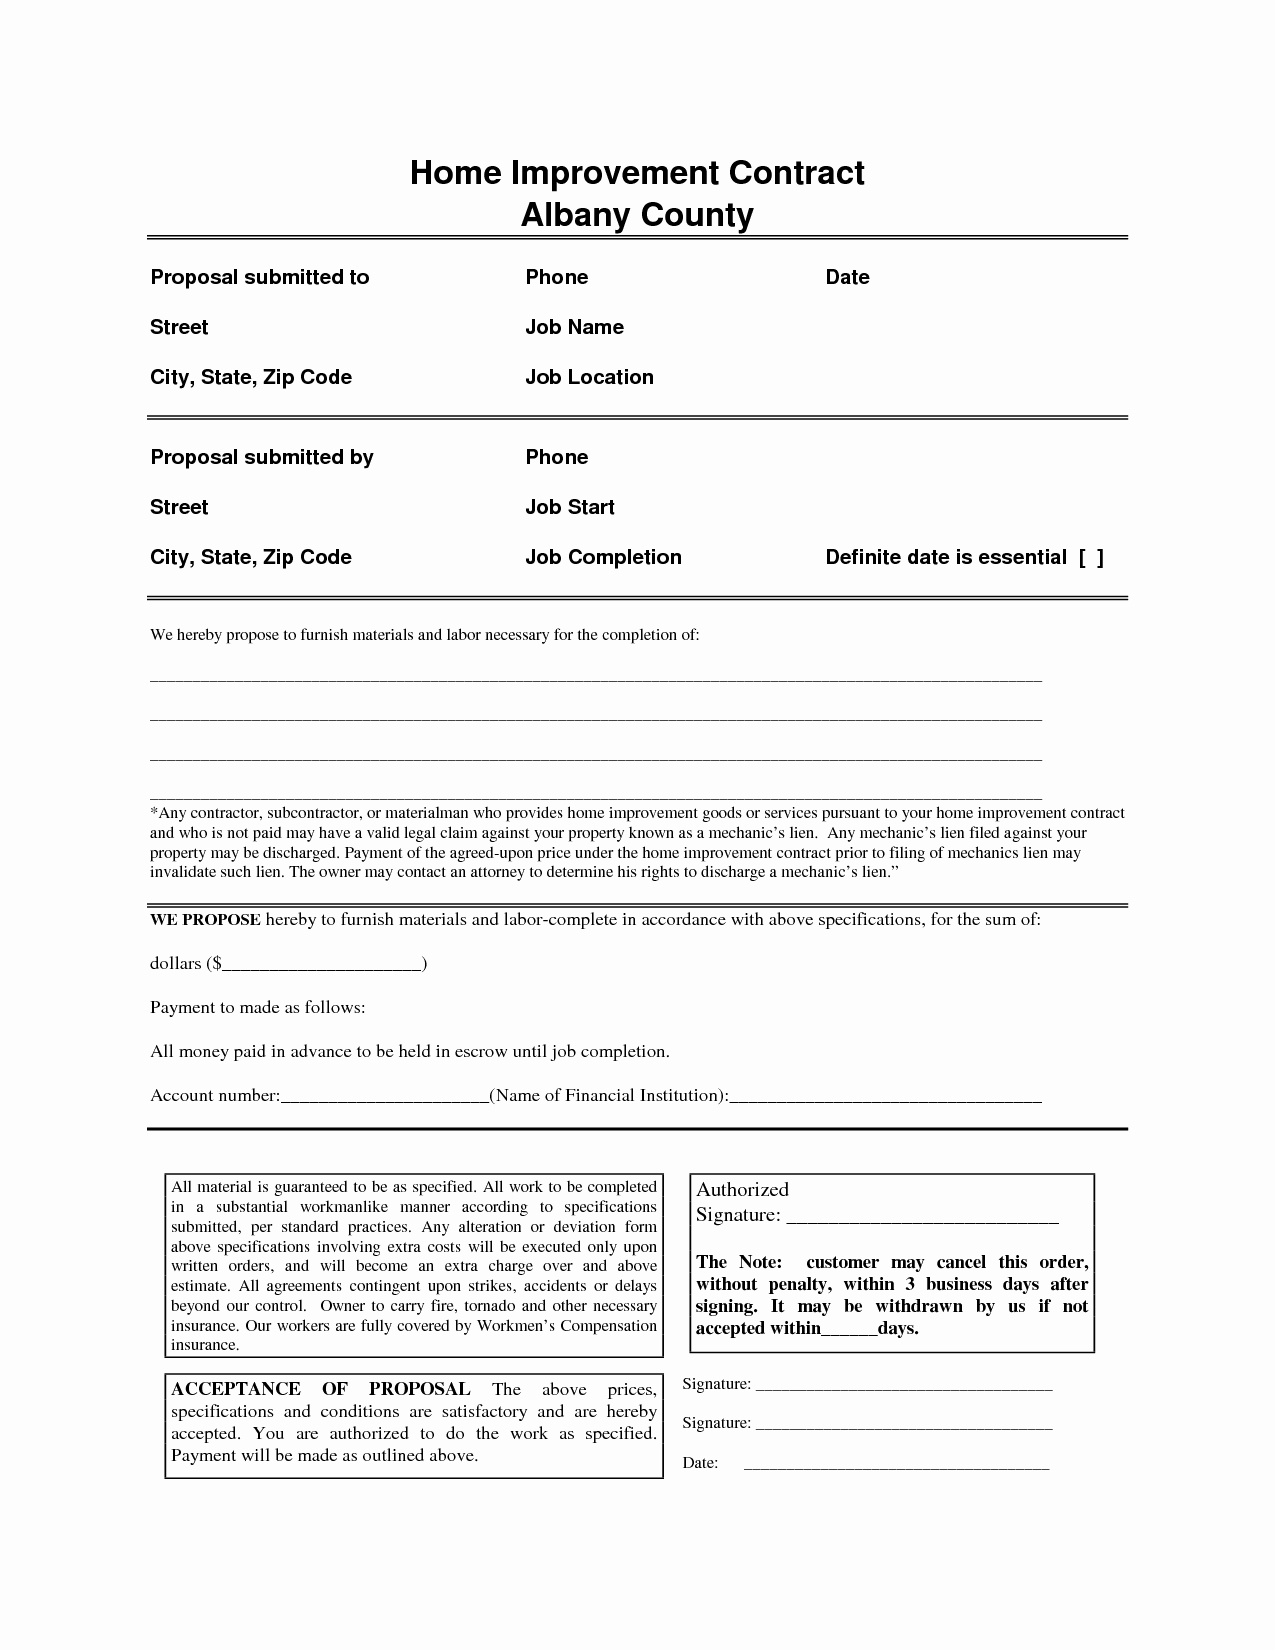 Home Remodeling Contract Template Inspirational Home Improvement Contract Free Printable Documents